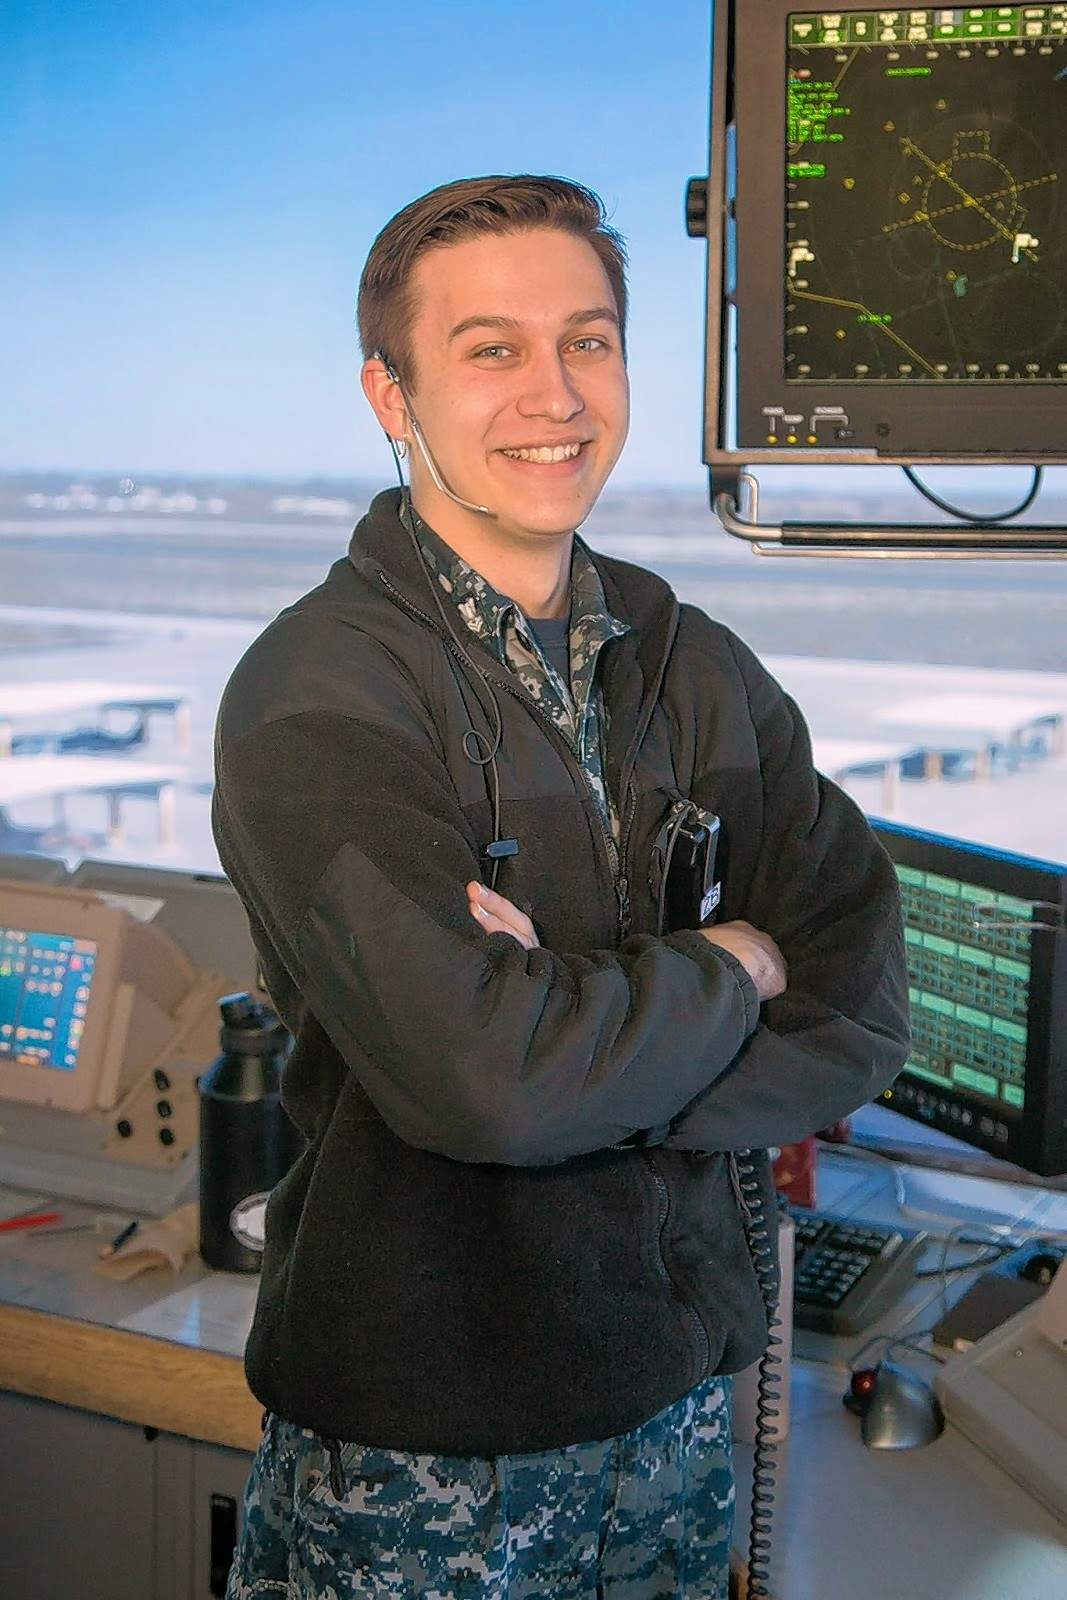 Petty Officer 2nd Class Zack Bernico is heading to TOPGUN as an air traffic control instructor. Bernico is a 2014 graduate of Johnston City High School.